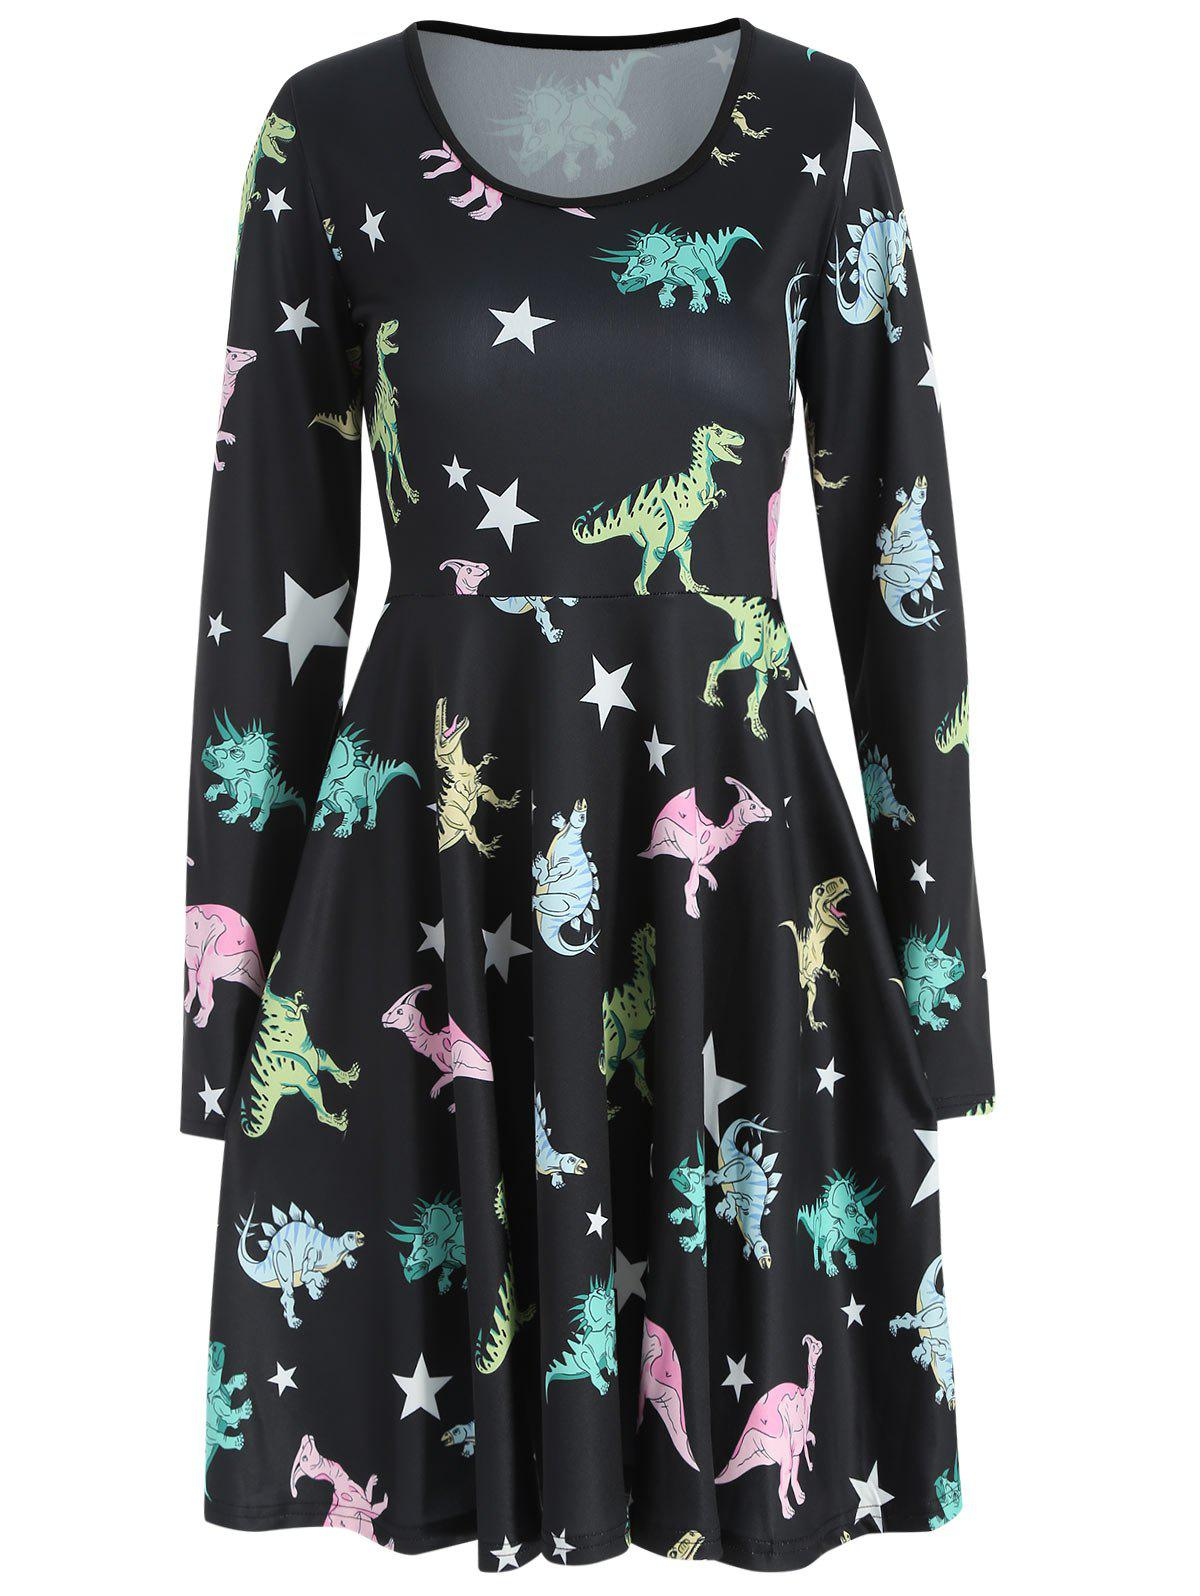 Best Dinosaurs Print High Waist Dress